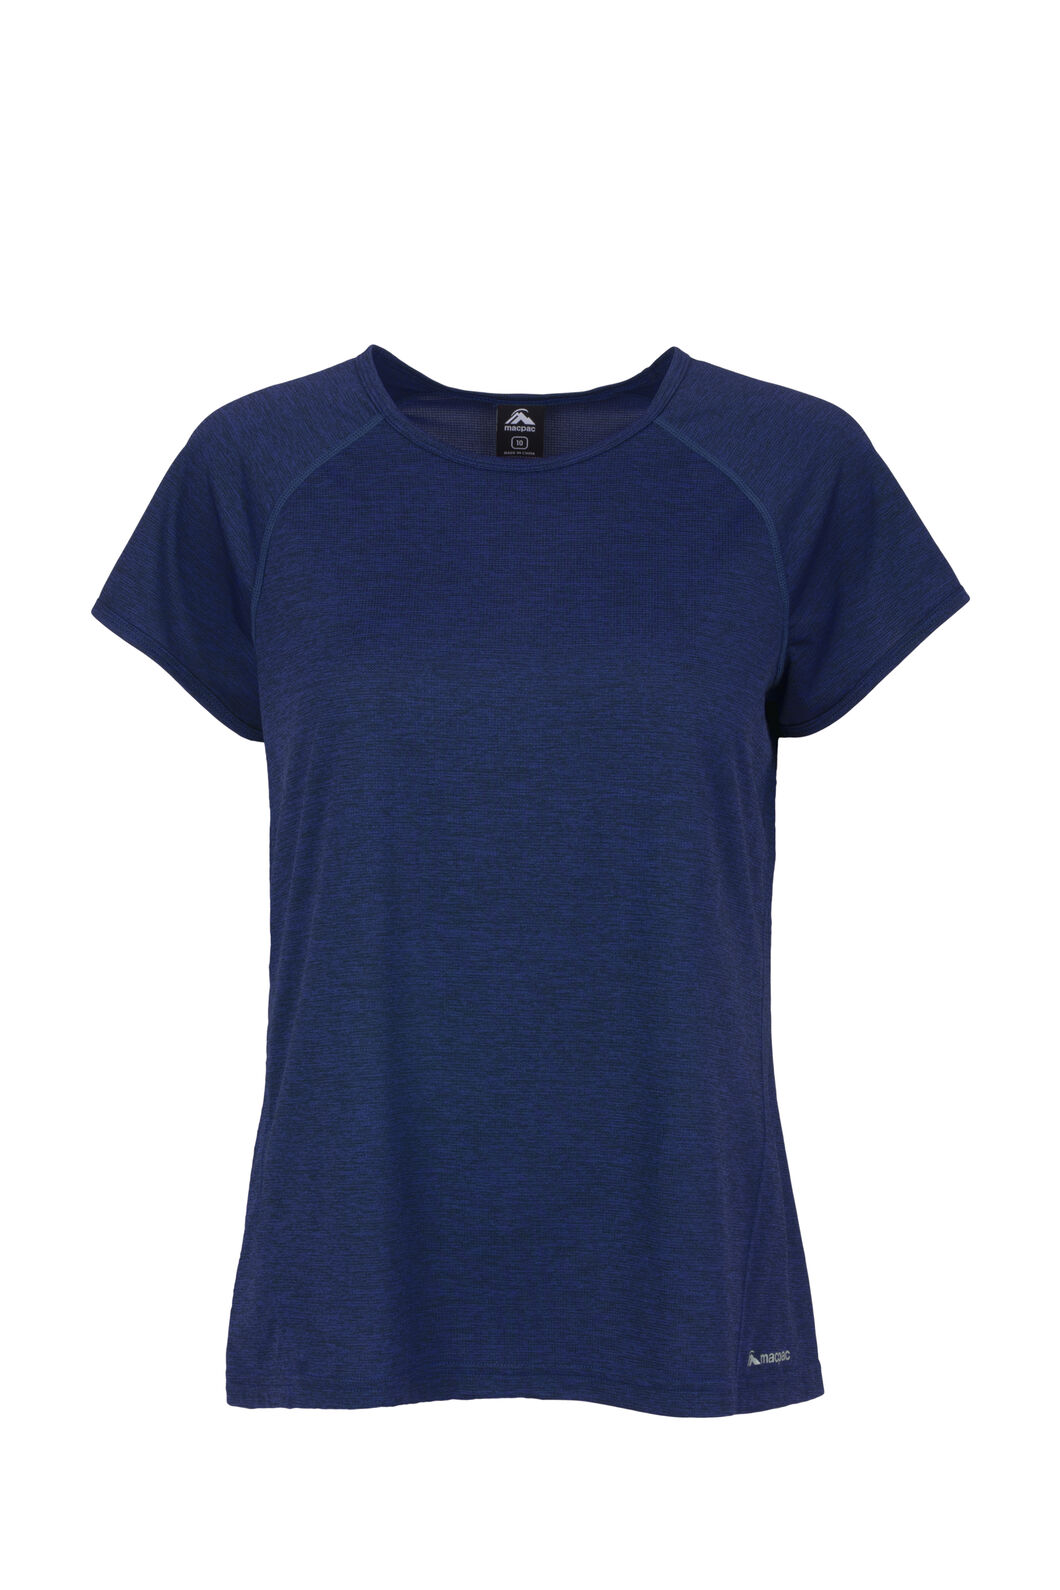 Macpac Take a Hike Short Sleeve - Women's, Medieval Blue, hi-res